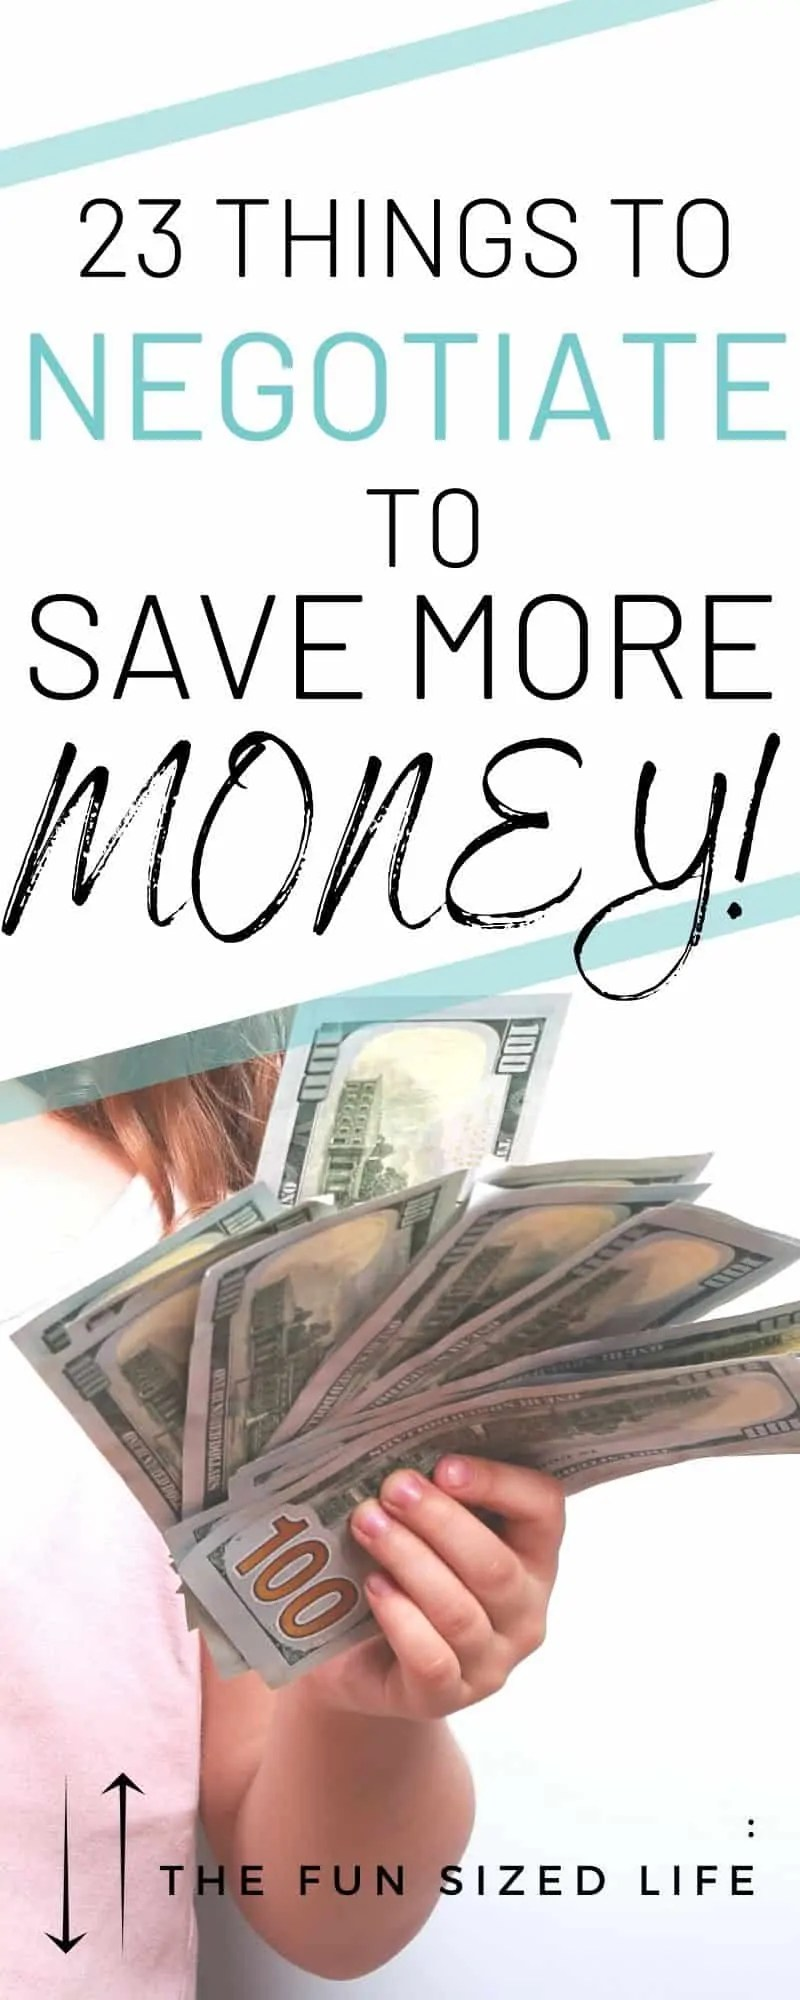 There are many ways you can negotiate to save money in several areas of your life. This list breaks down 22 surprising things you can start negotiating.